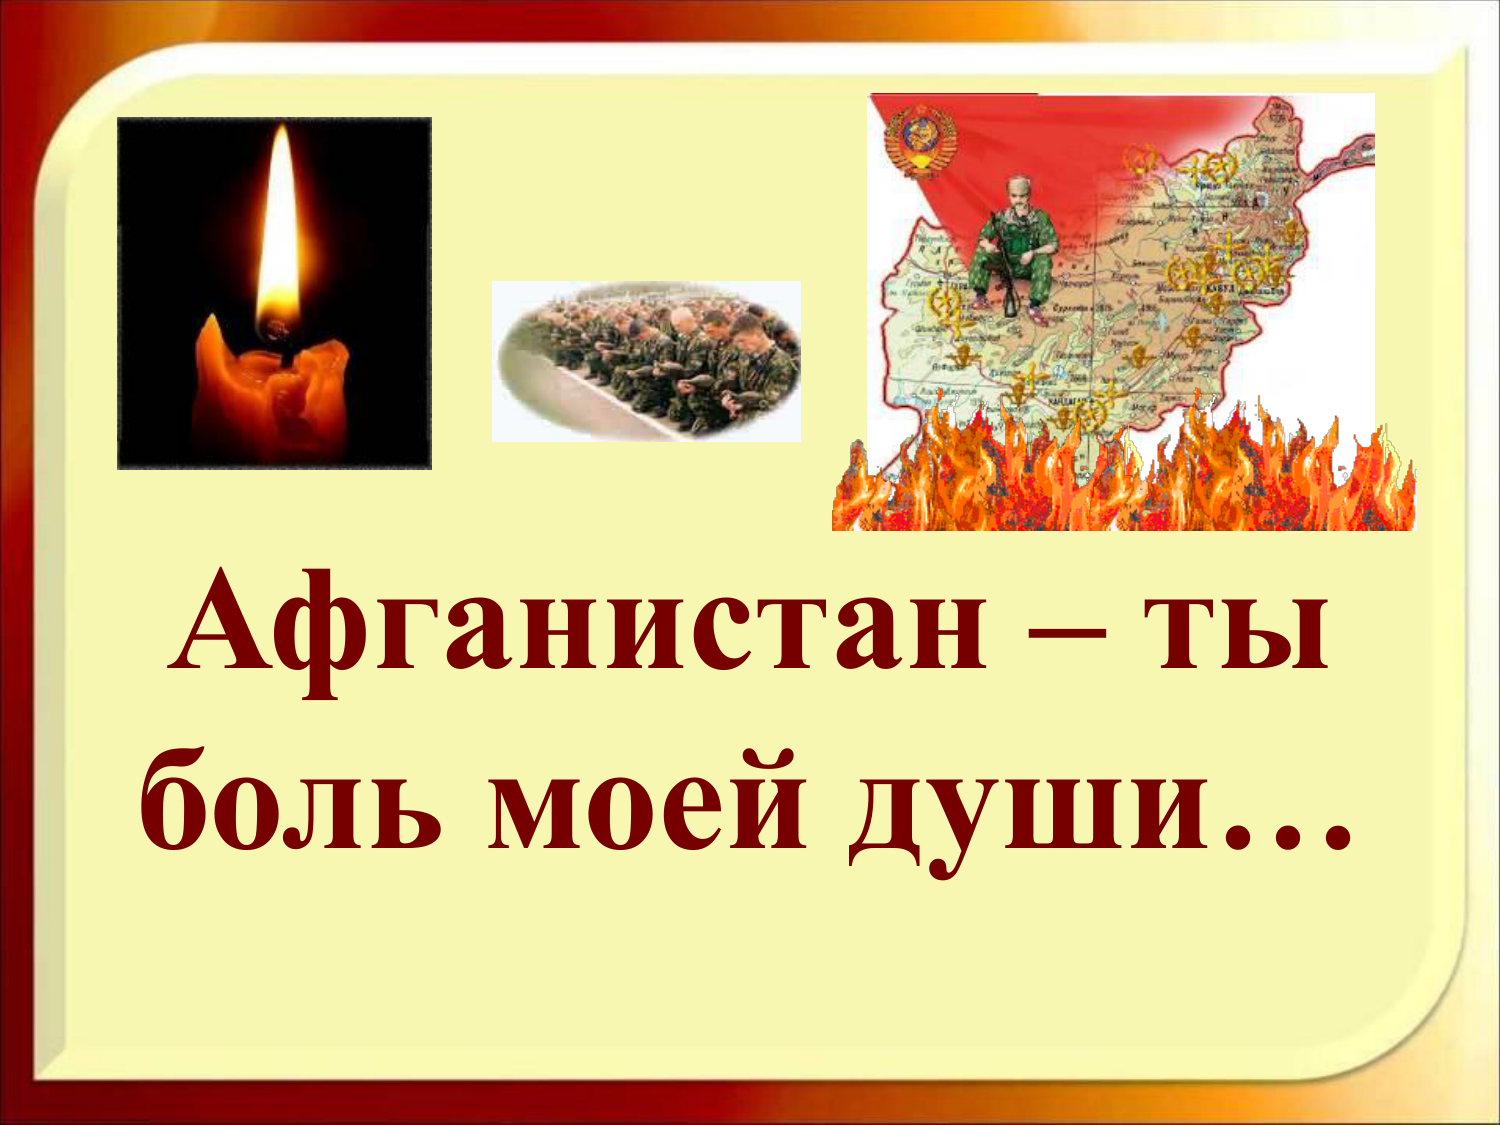 http://s2.docme.ru/store/data/000271387_1-ae21e760d2d004d4c0eae86464d462a3.png